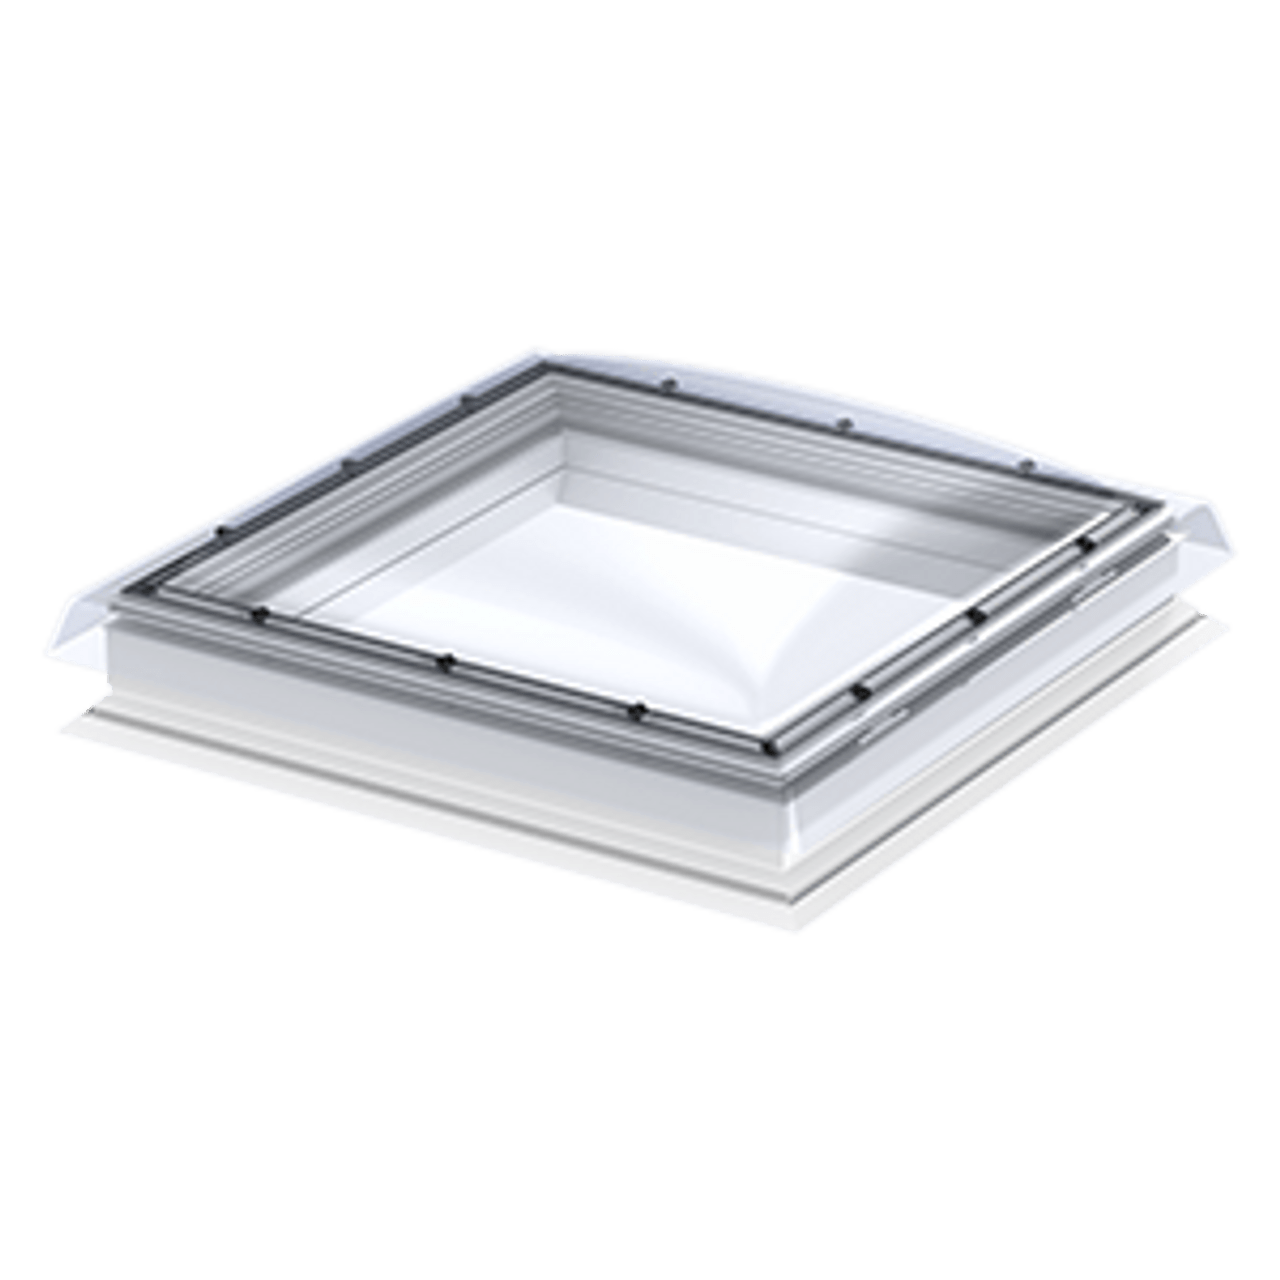 14.5 x 22.5 Polycarbonate Domed Flush Mount Skylights for Sheds 16 x 24